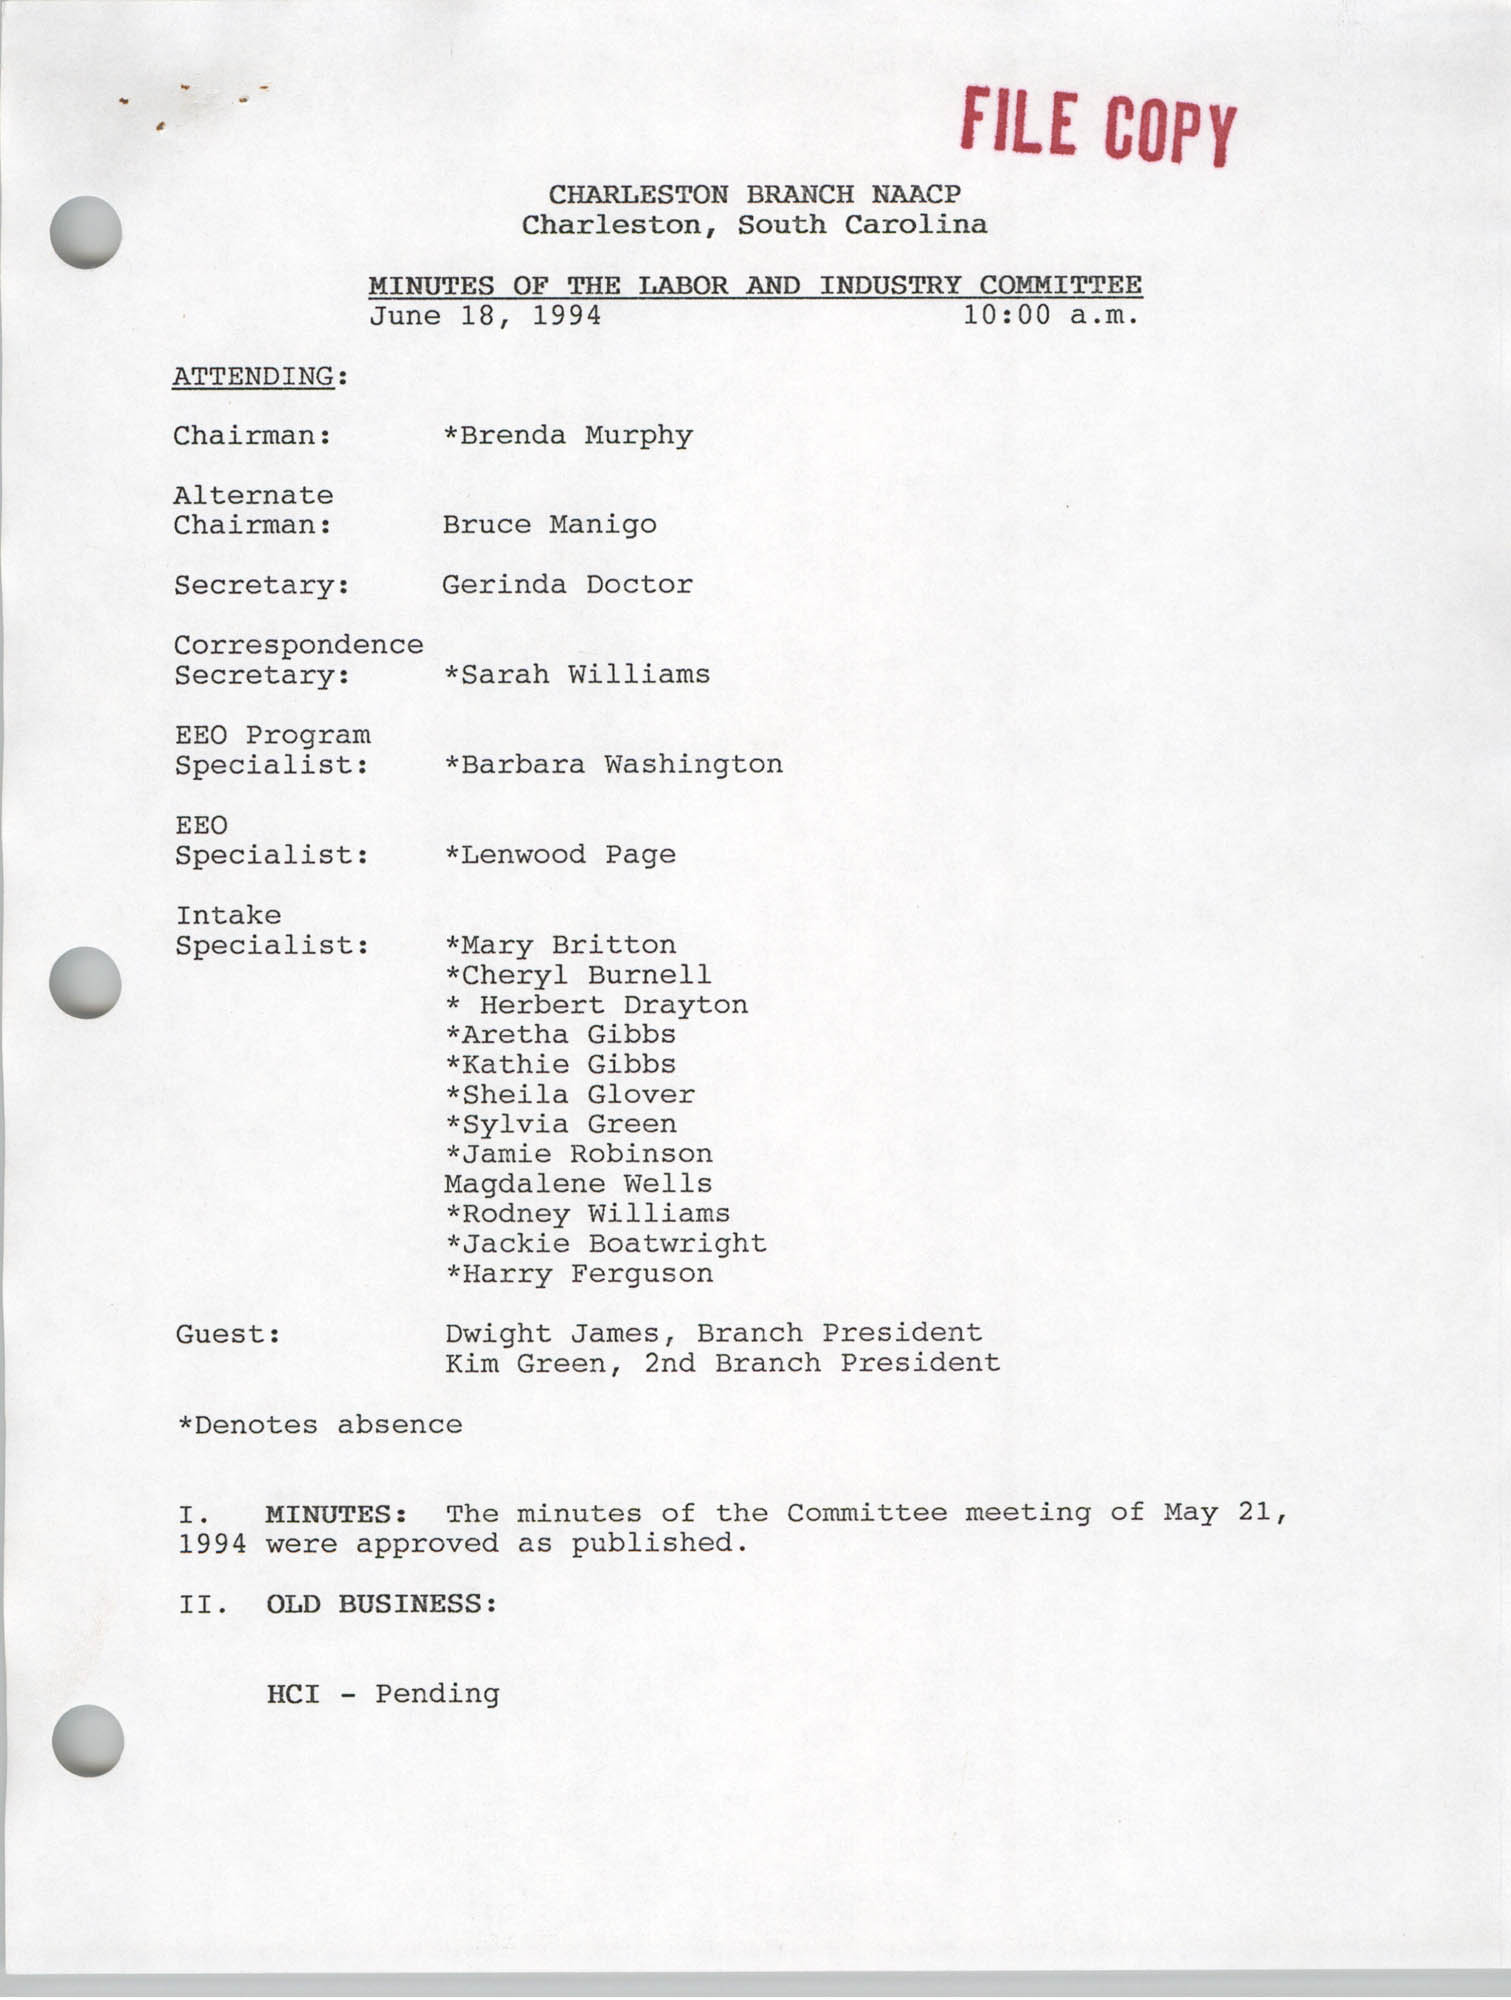 Charleston Branch of the NAACP Labor and Industry Committee Minutes, June 18, 1994